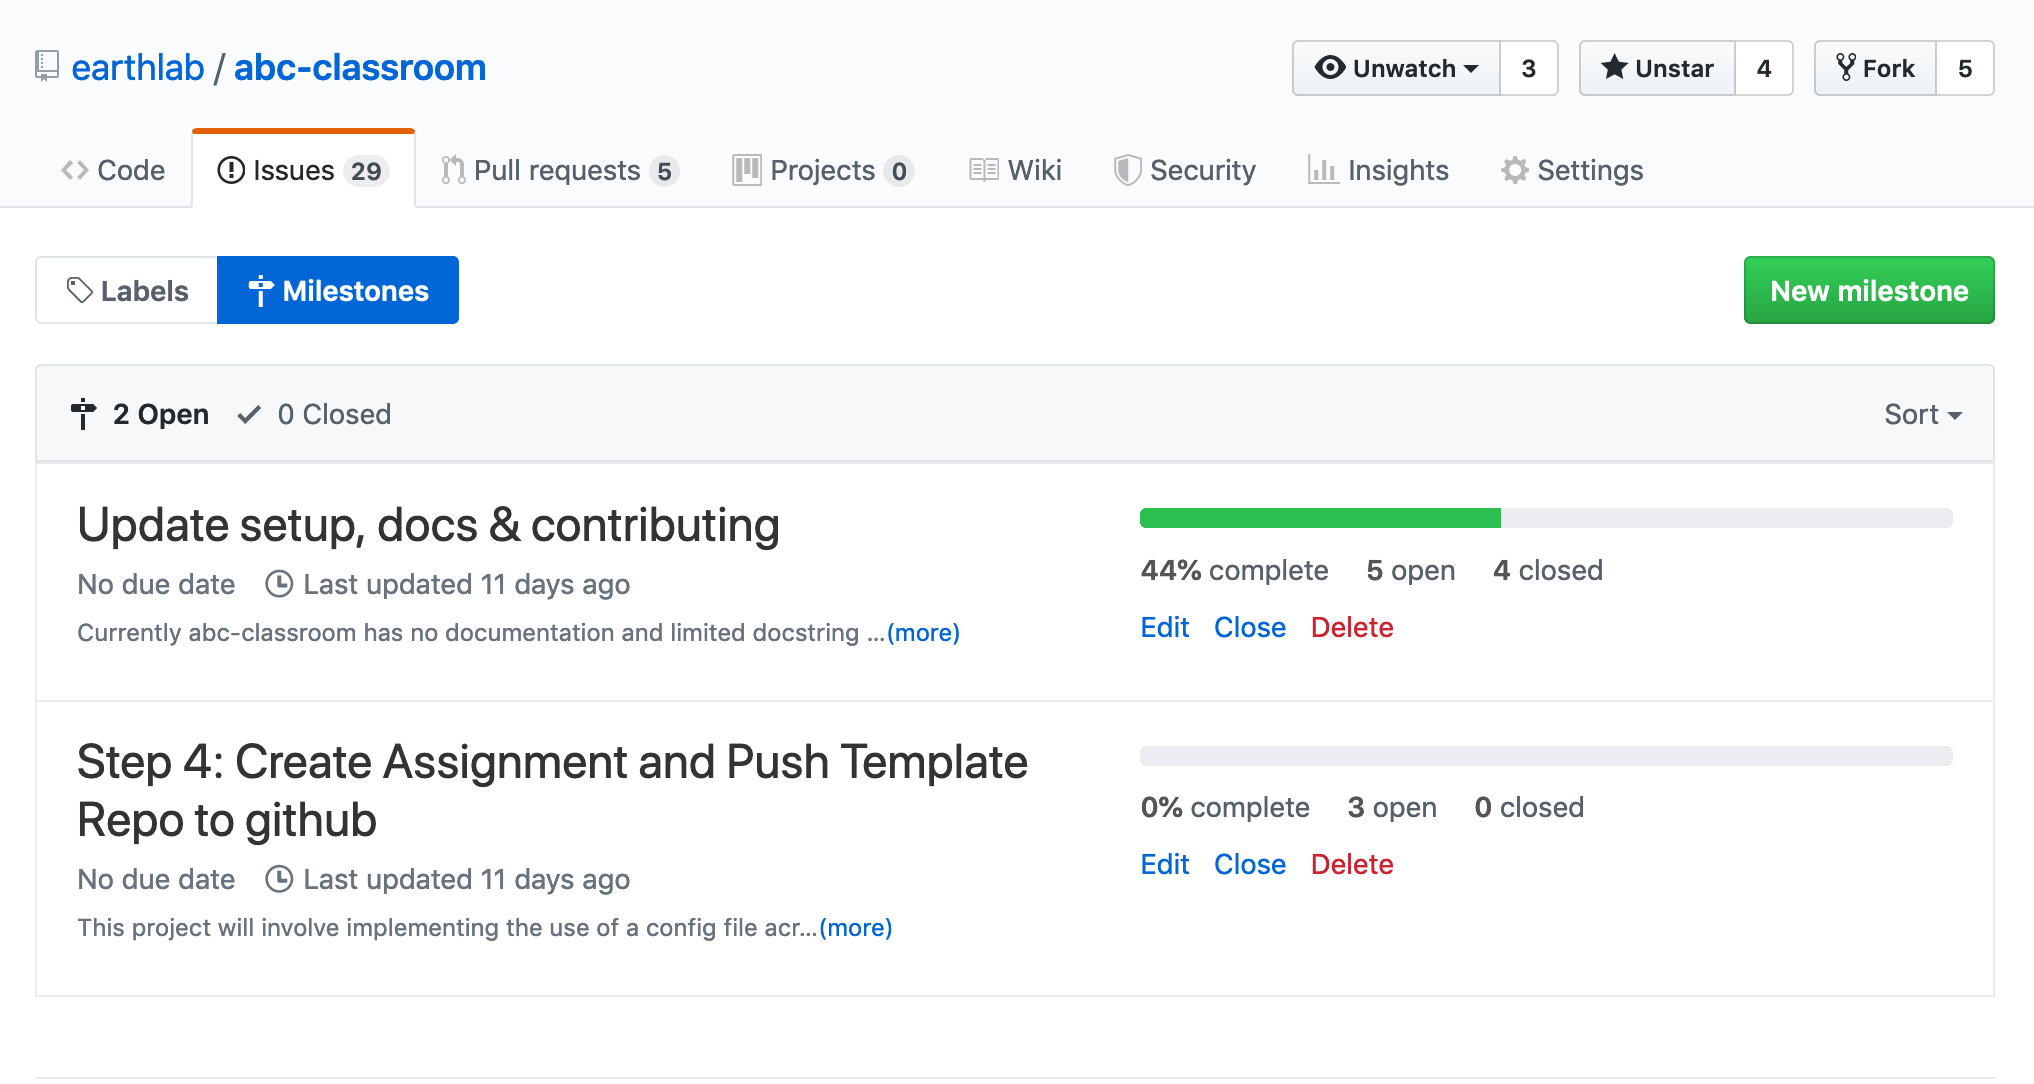 GitHub milestones allow you to track smaller sets of tasks within a larger GitHub project.